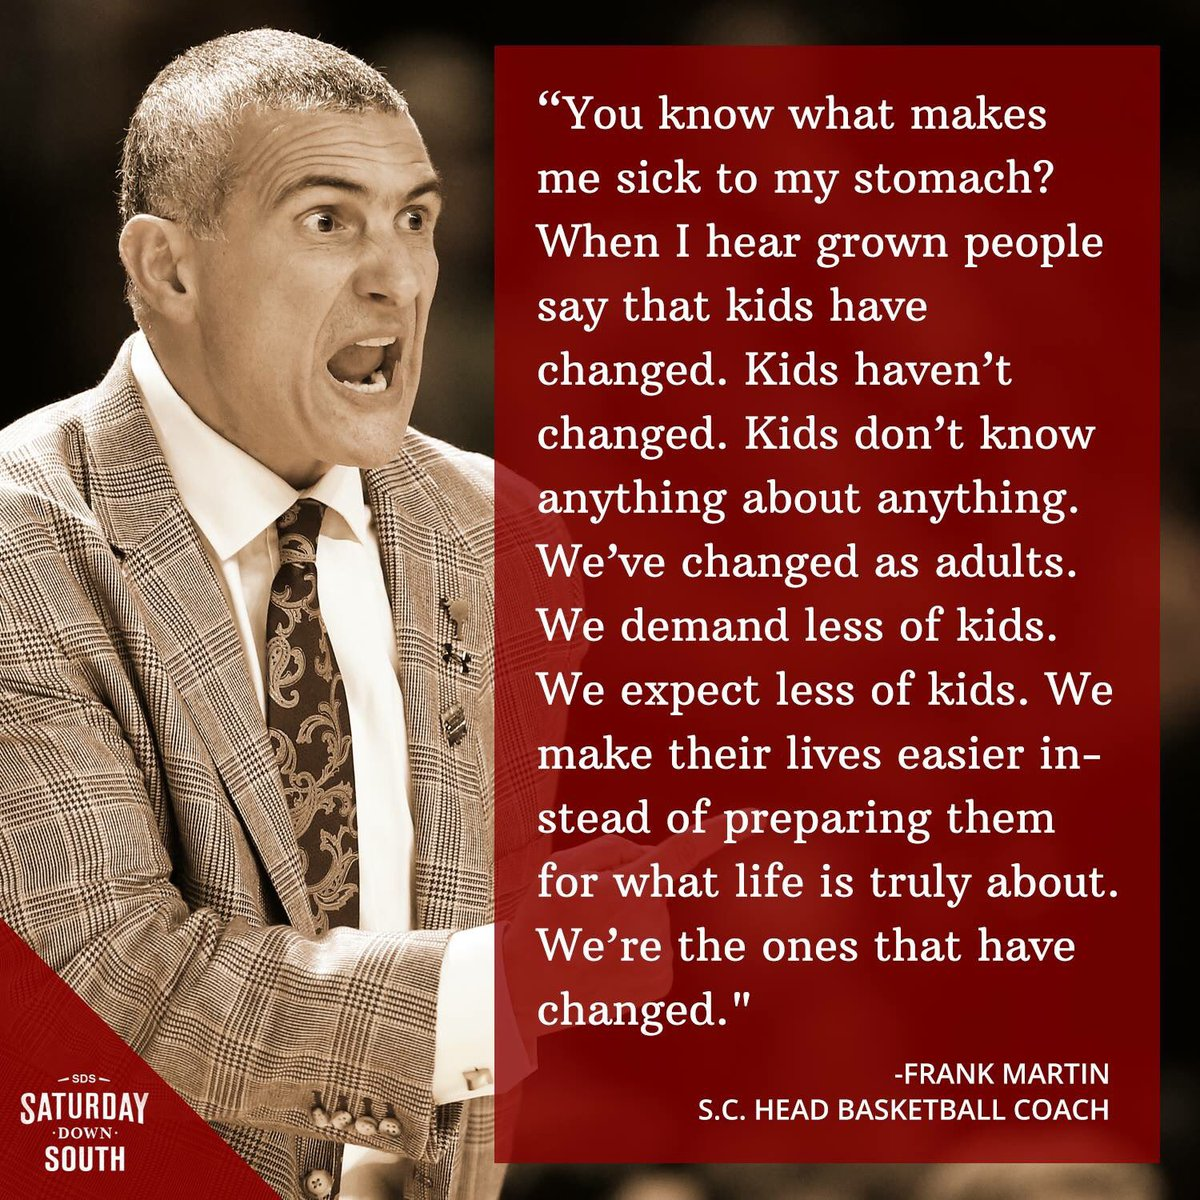 How right you are @FrankMartin_SC https://t.co/0n7qTNddGX